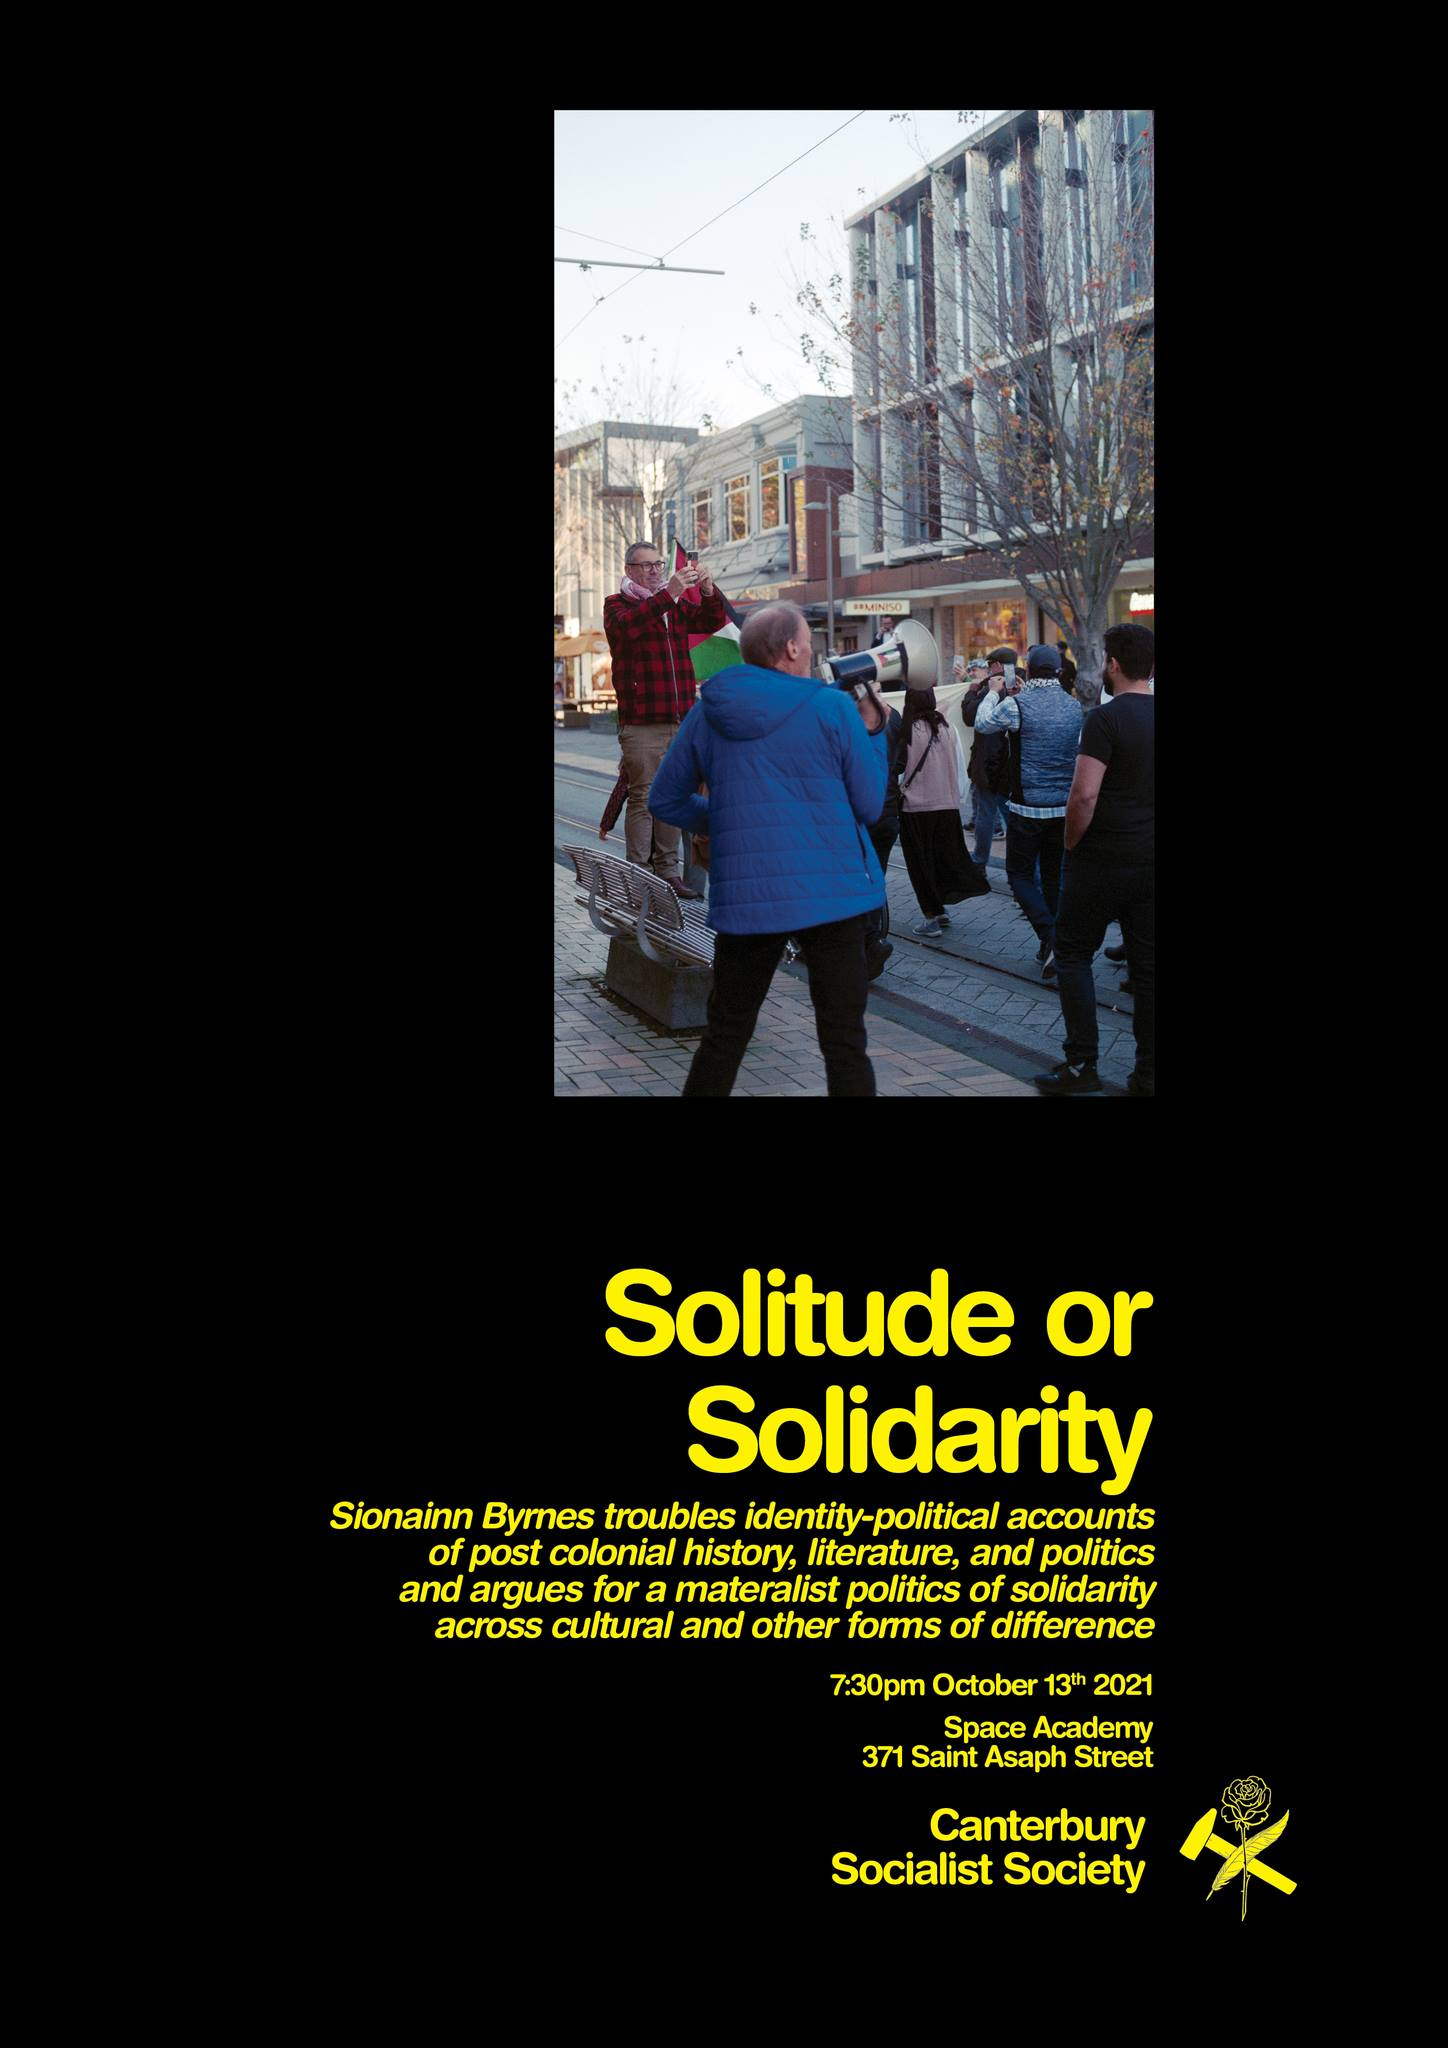 CSS Public Lecture – Solitude or Solidarity: Marxism and Postcolonial Theory